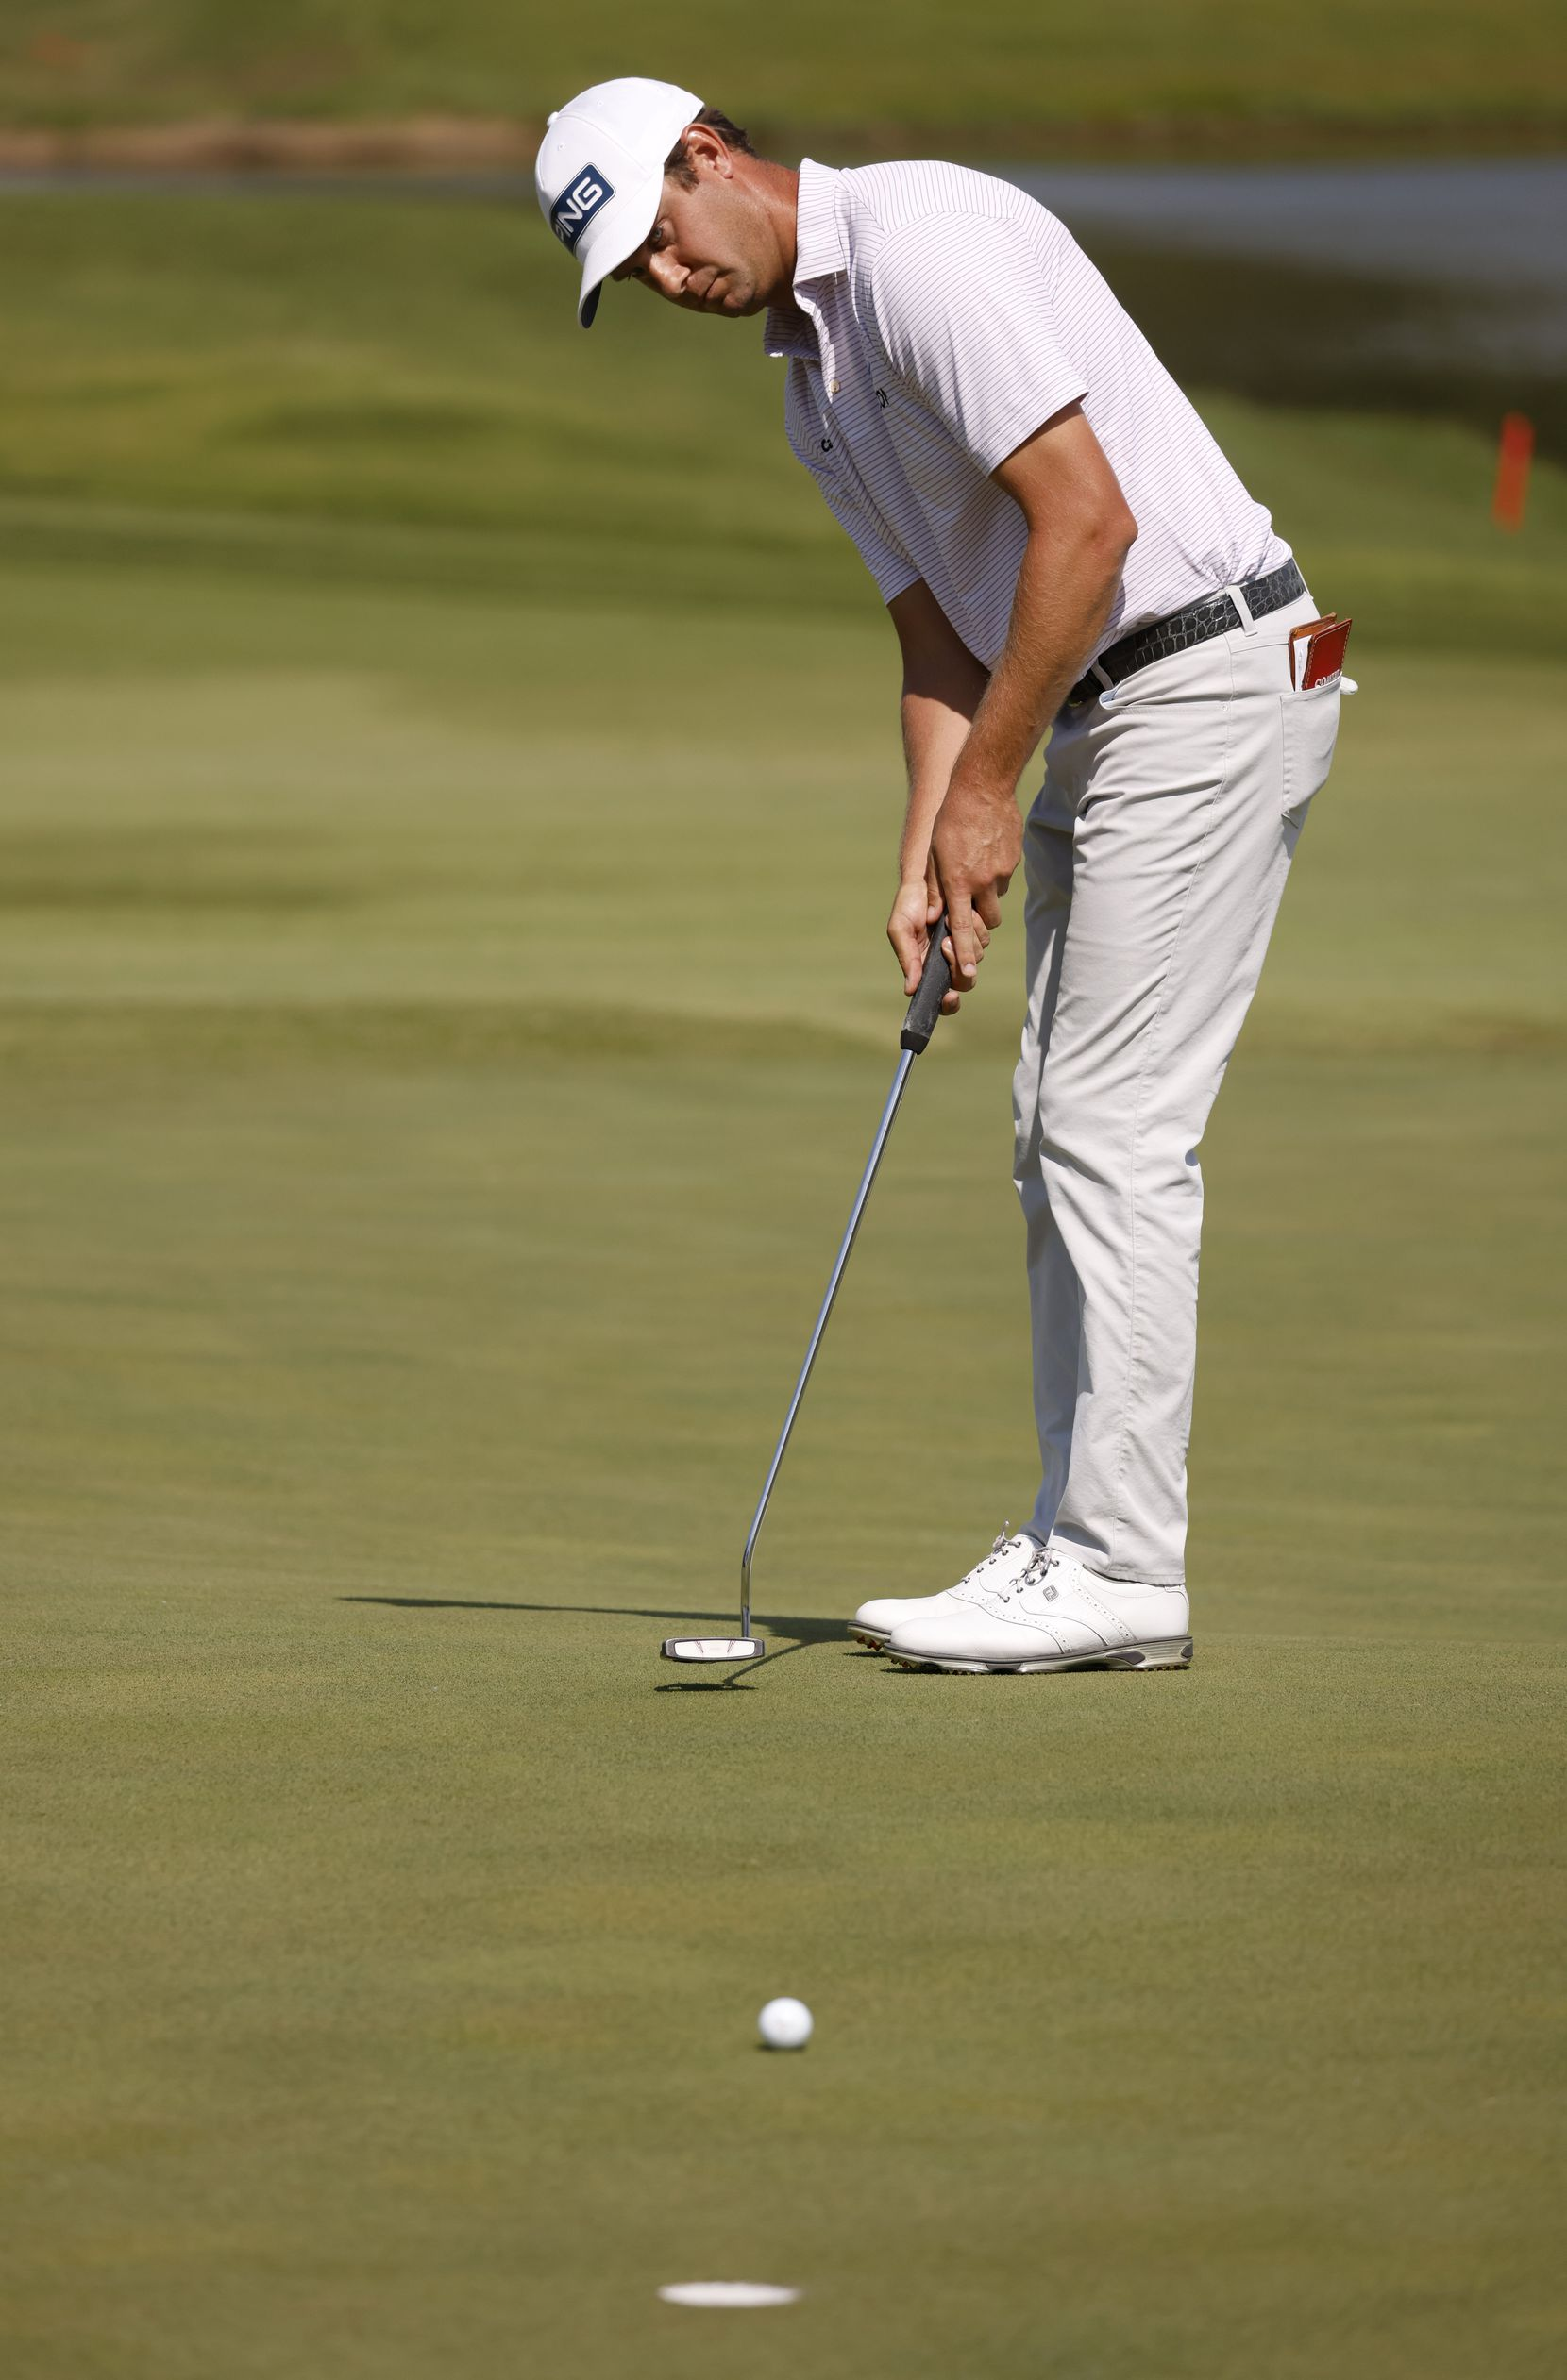 Harris English putts on the 14th hole during round 3 of the AT&T Byron Nelson  at TPC Craig Ranch on Saturday, May 15, 2021 in McKinney, Texas. (Vernon Bryant/The Dallas Morning News)